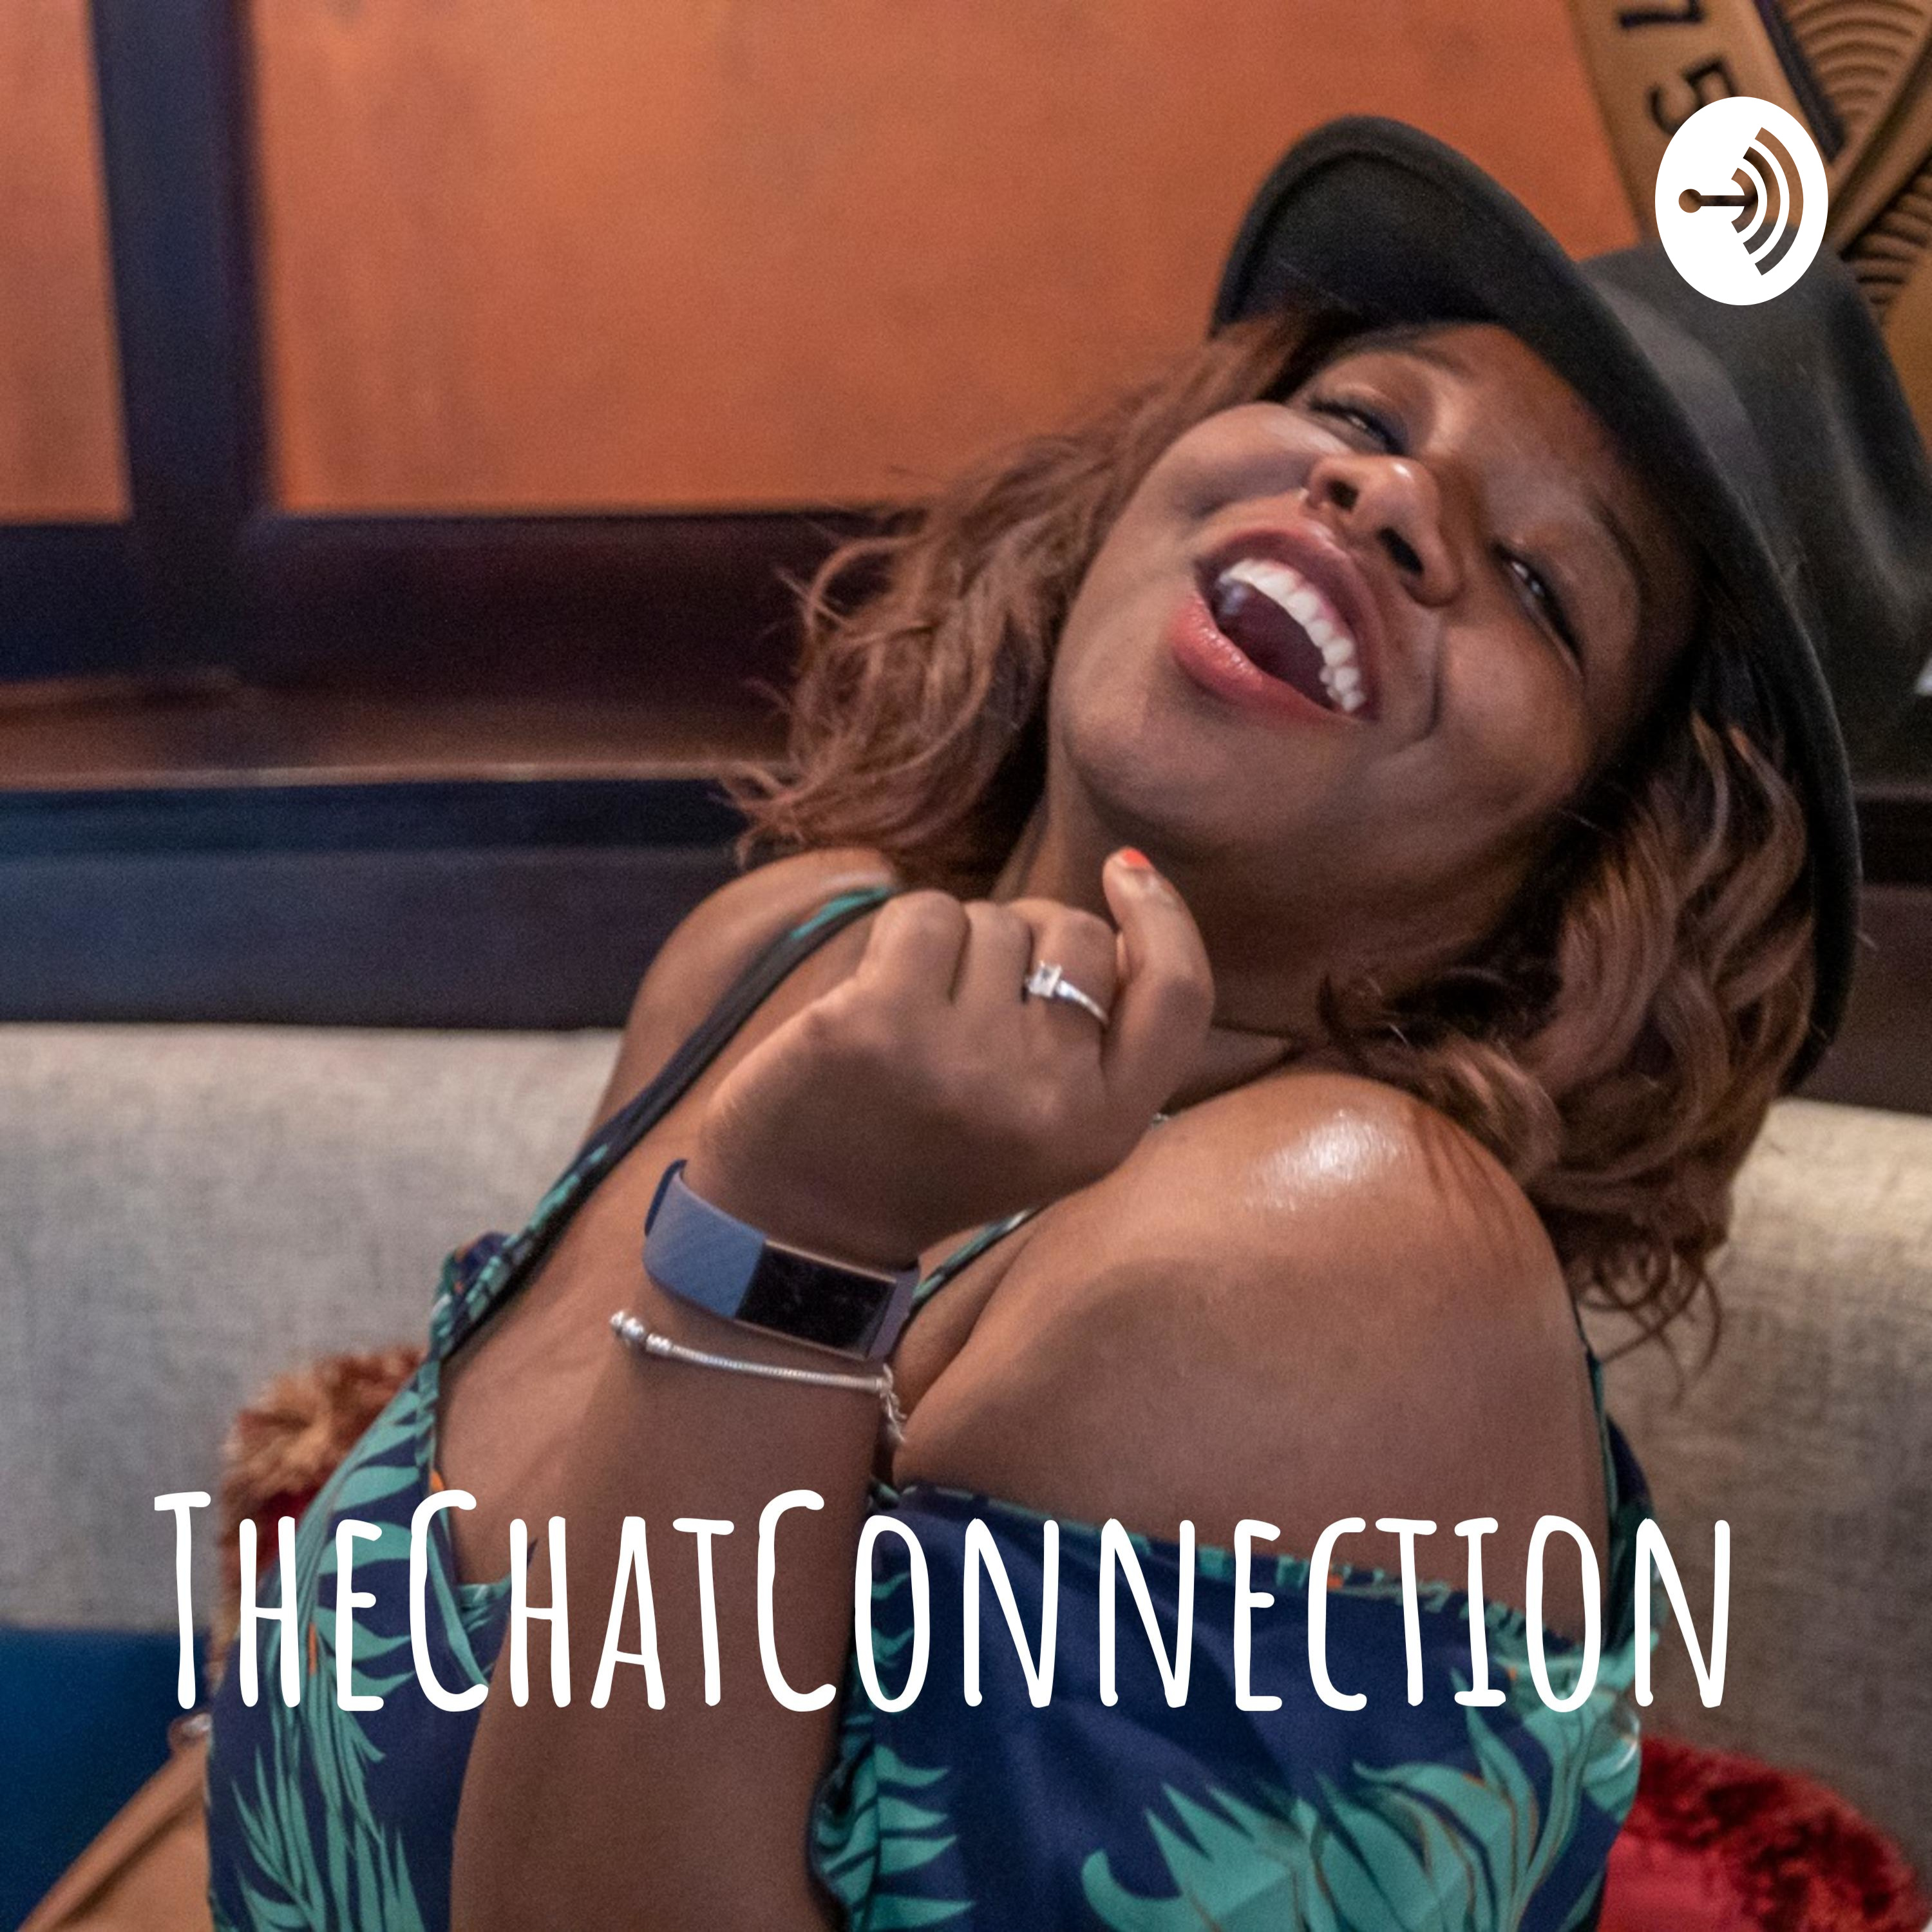 TheChatConnection